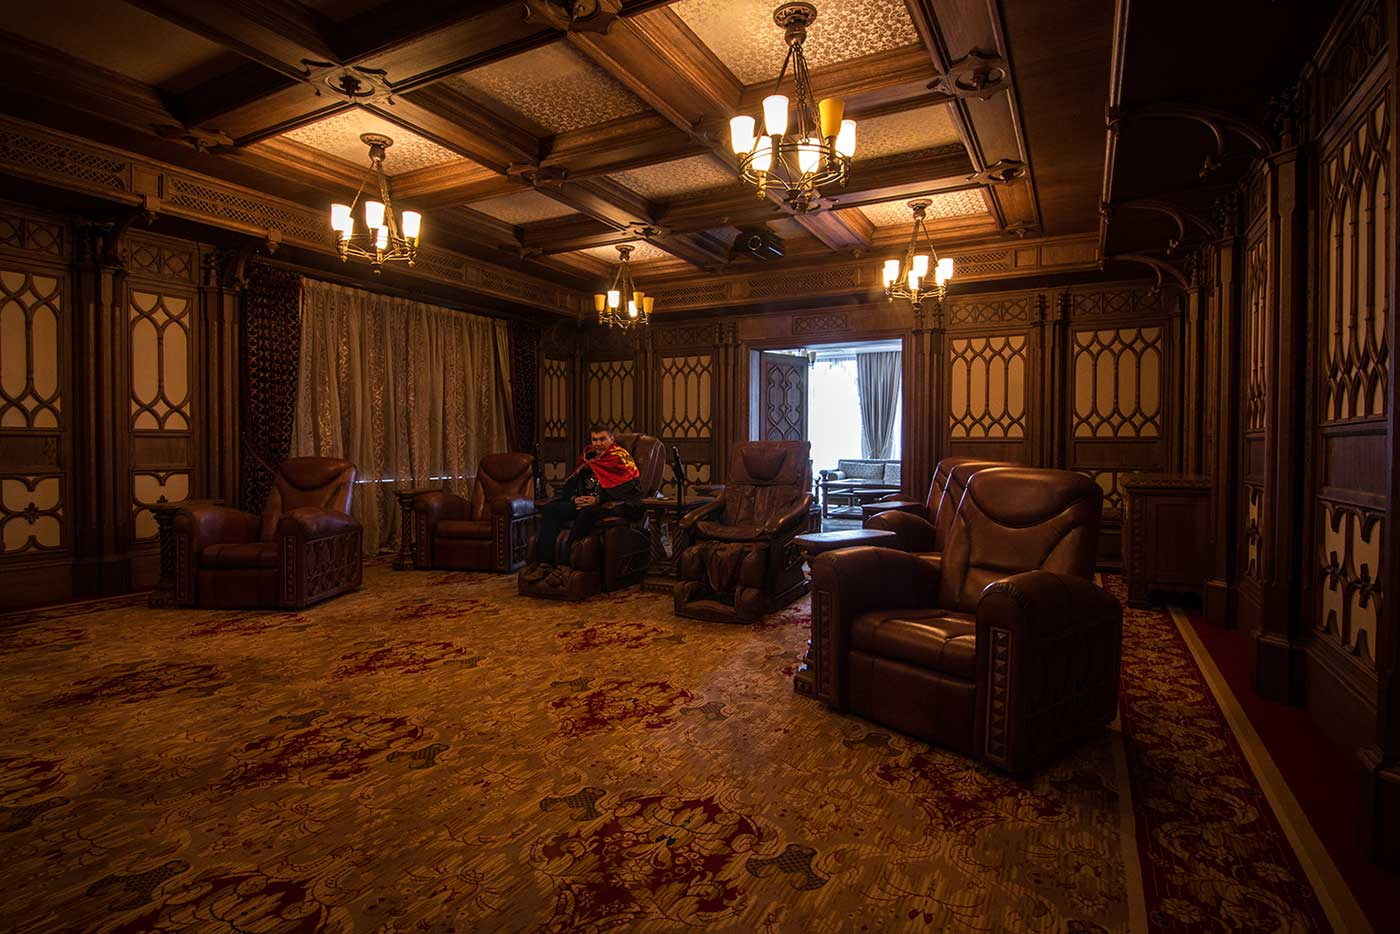 The home cinema at the Mezhyhirya residence featured Gothic-style wood panelling and eight leather armchairs. The two in the centre, reserved for Yanukovich and his mistress, were fitted with massagers.